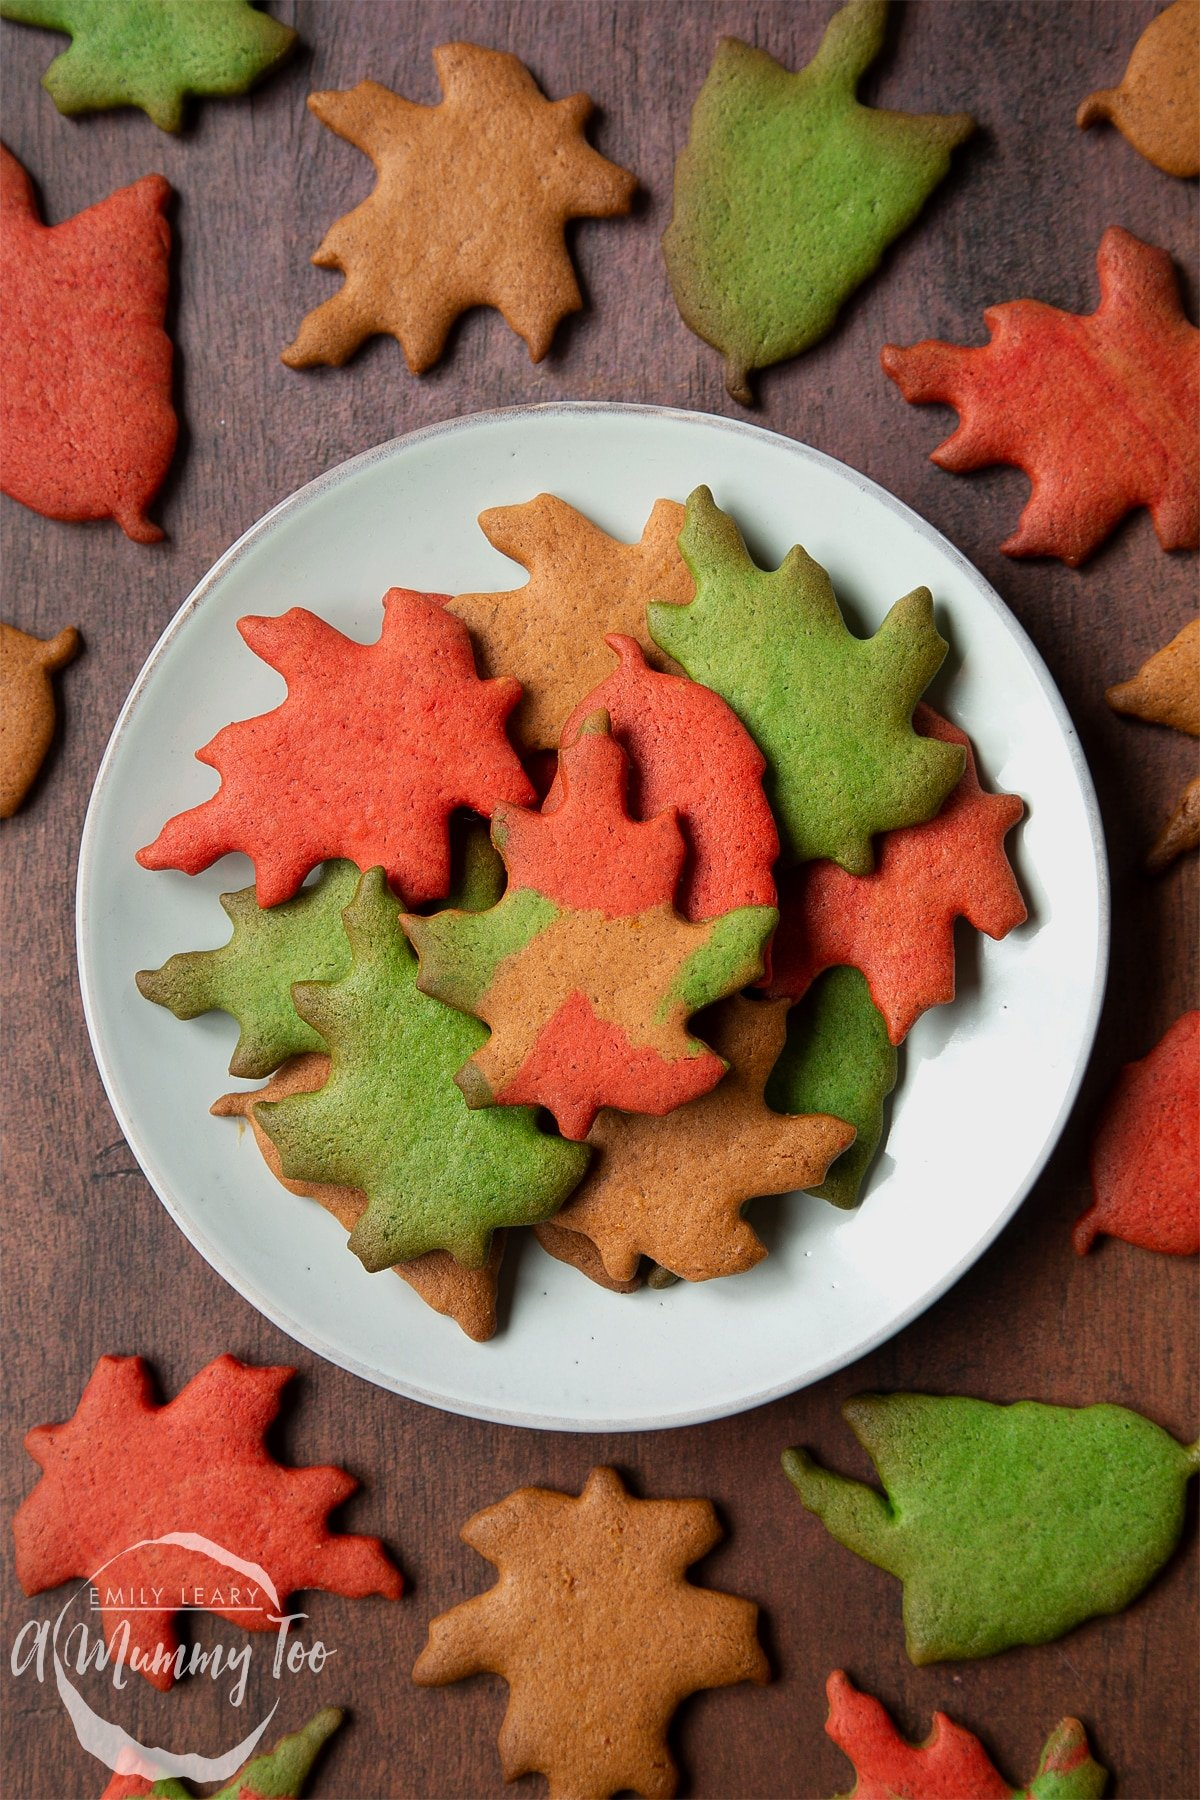 A plate of colourful red, green and brown autumn cookies cut into the shapes of autumn leaves. More Autumn biscuits are arranged on the wooden surface surrounding the plate.